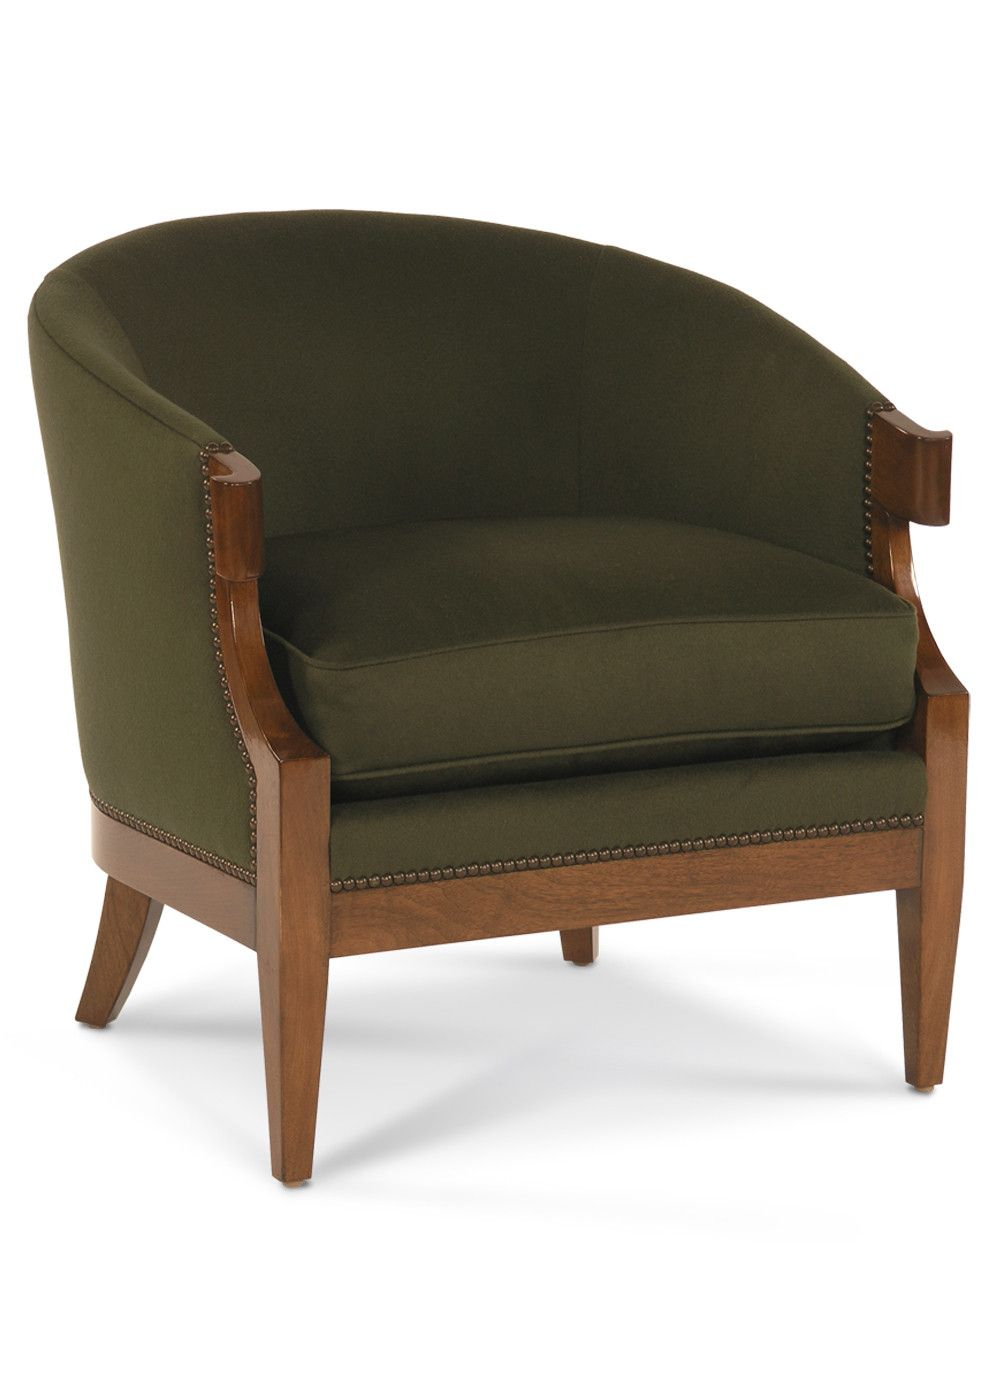 interiors avery collections cf occasional chair chairs